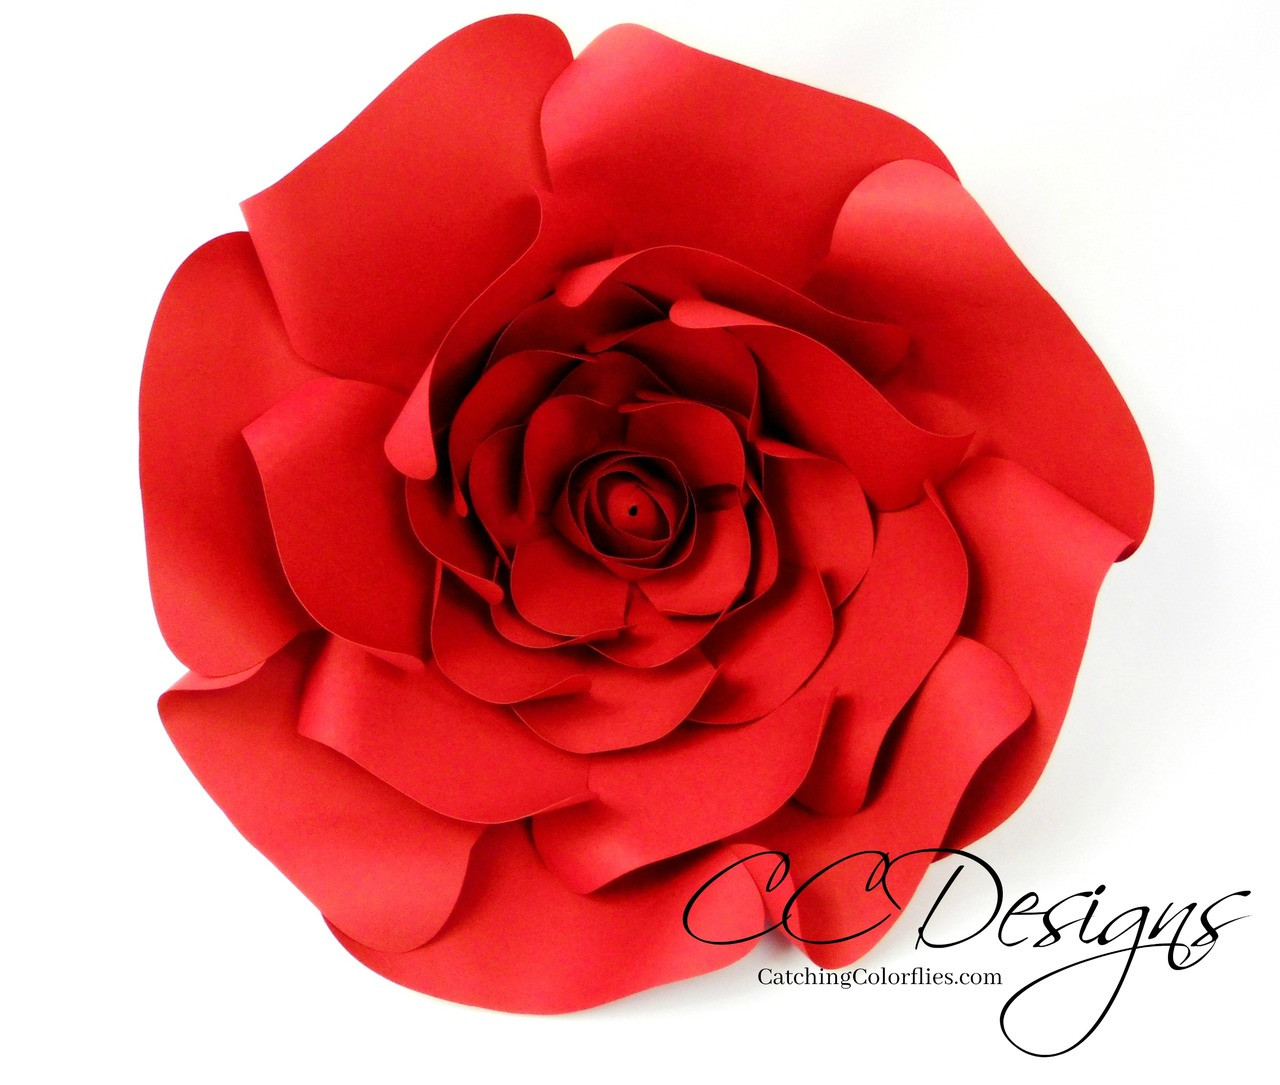 Majesty Style Rose Giant Paper Rose Templates Catching Colorlfies